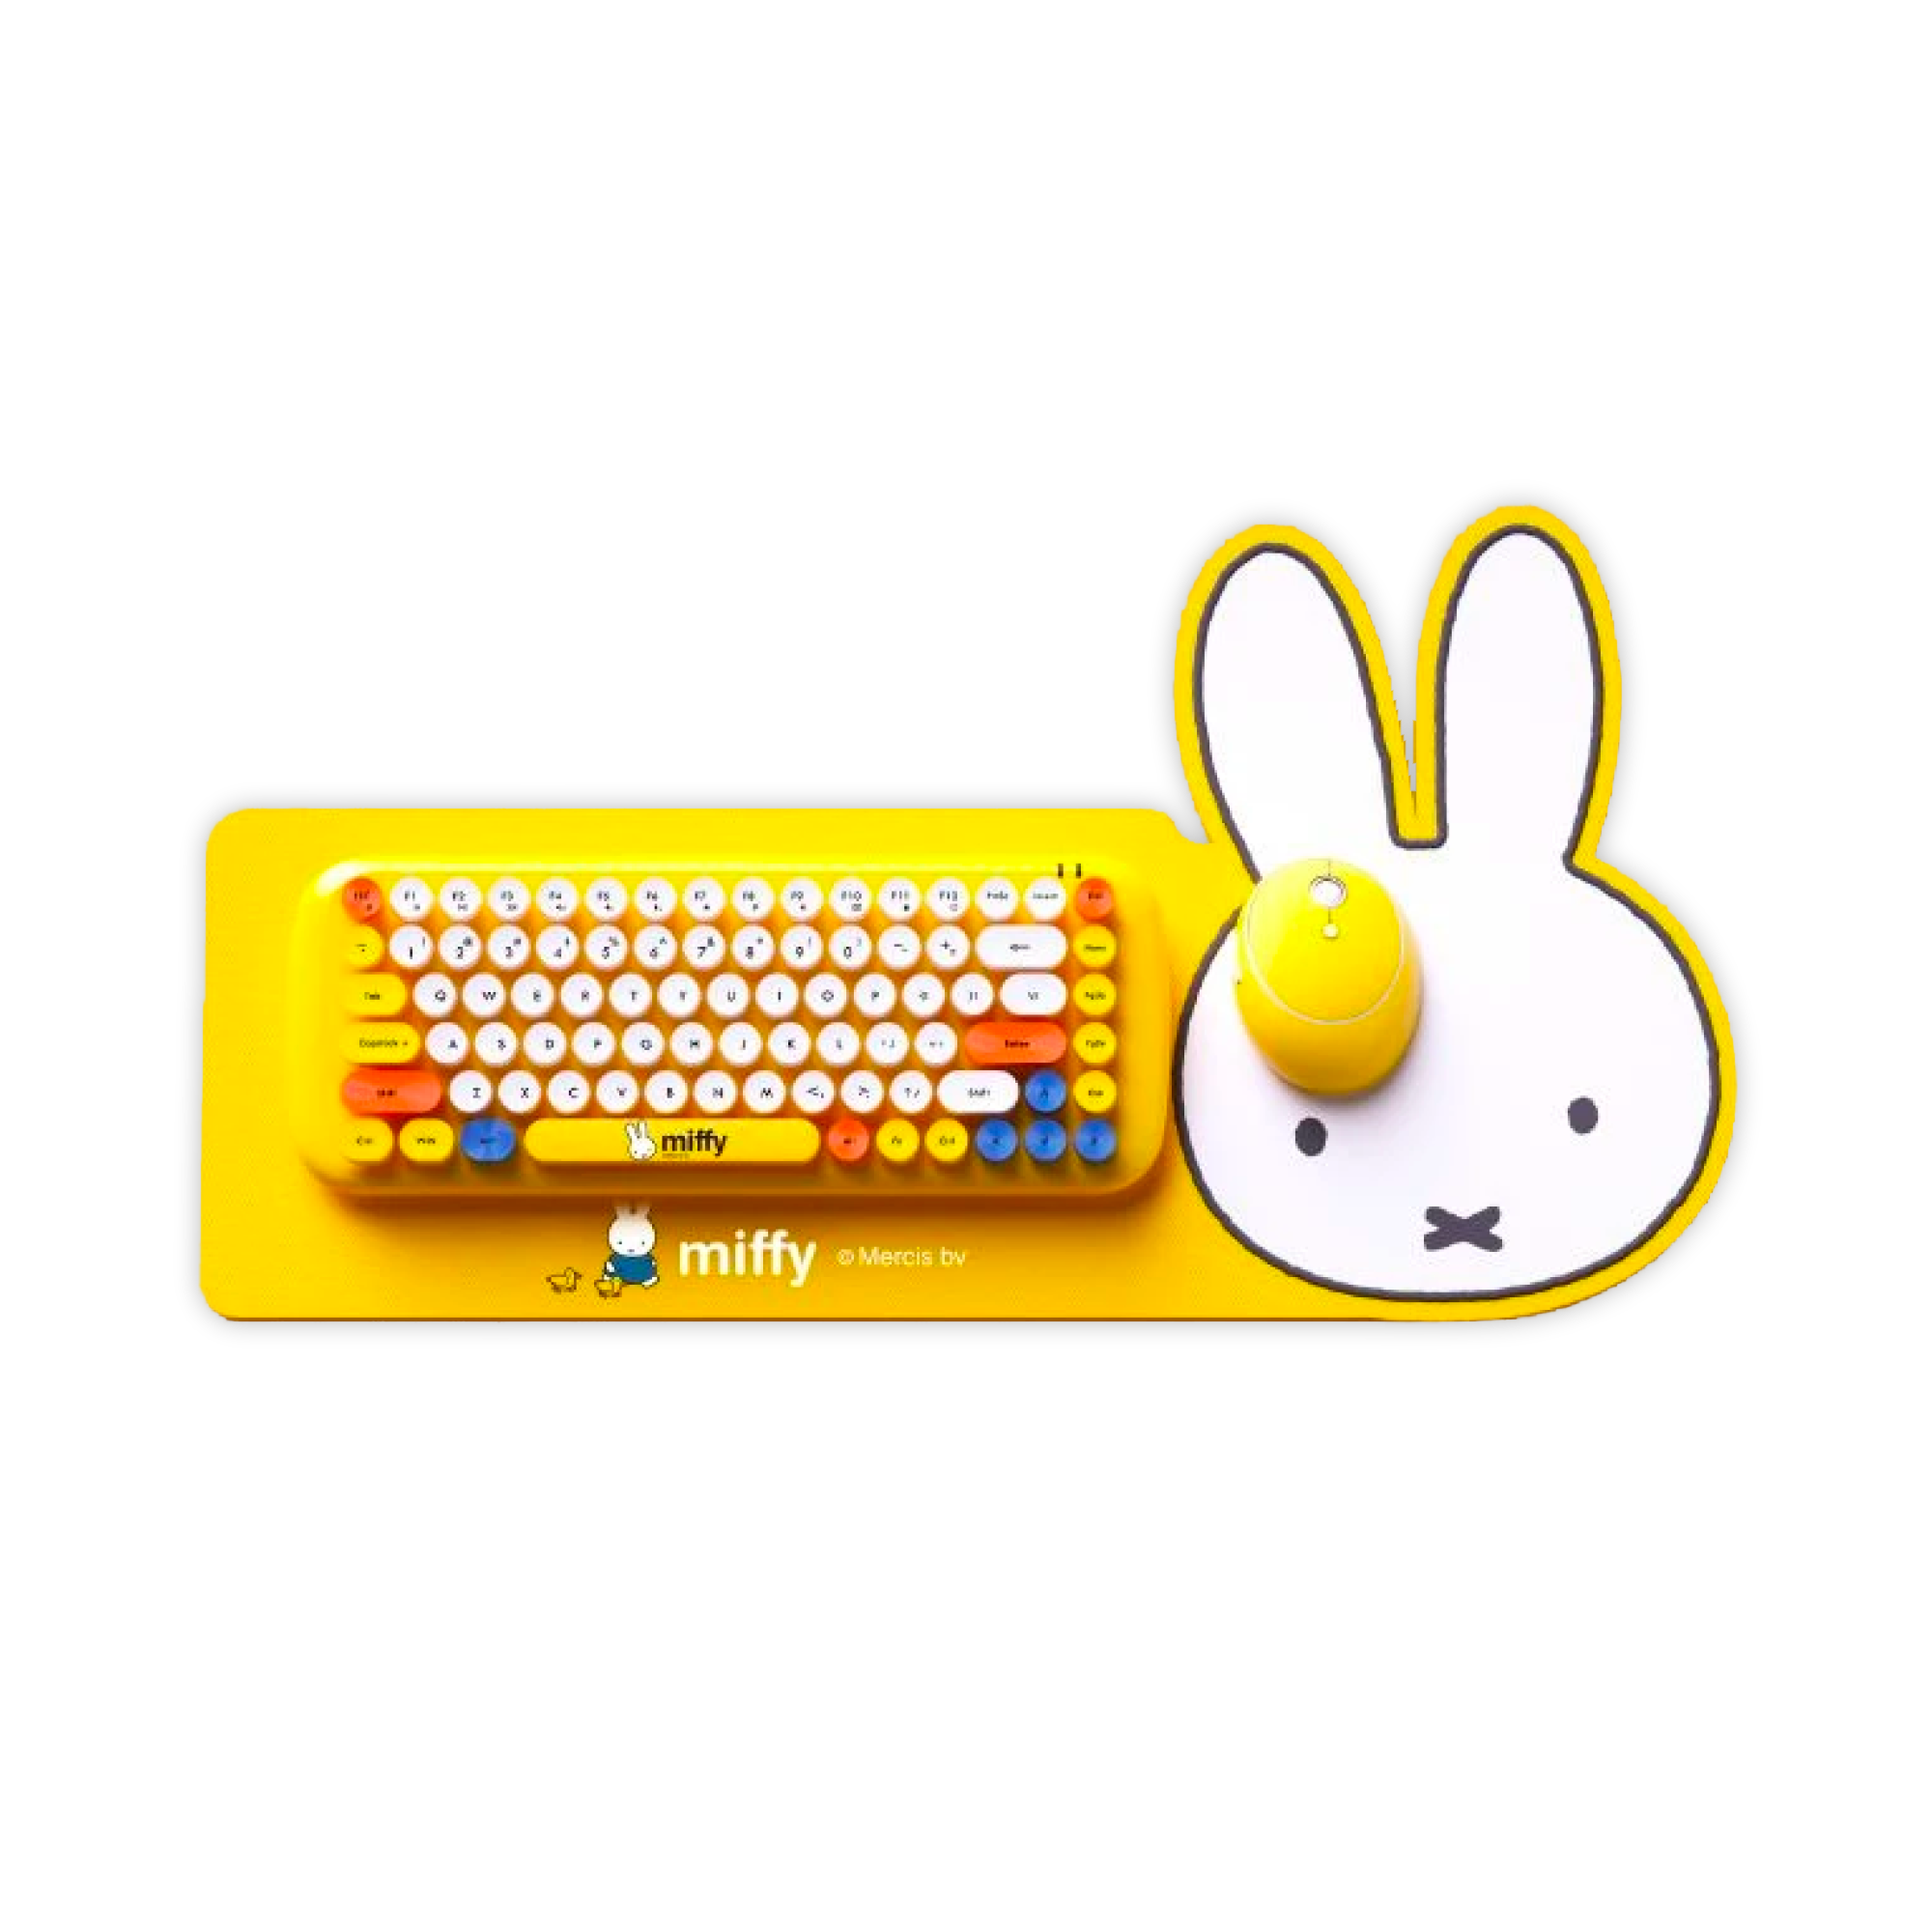 Miffy Wireless Keyboard Mouse Combo , Yellow